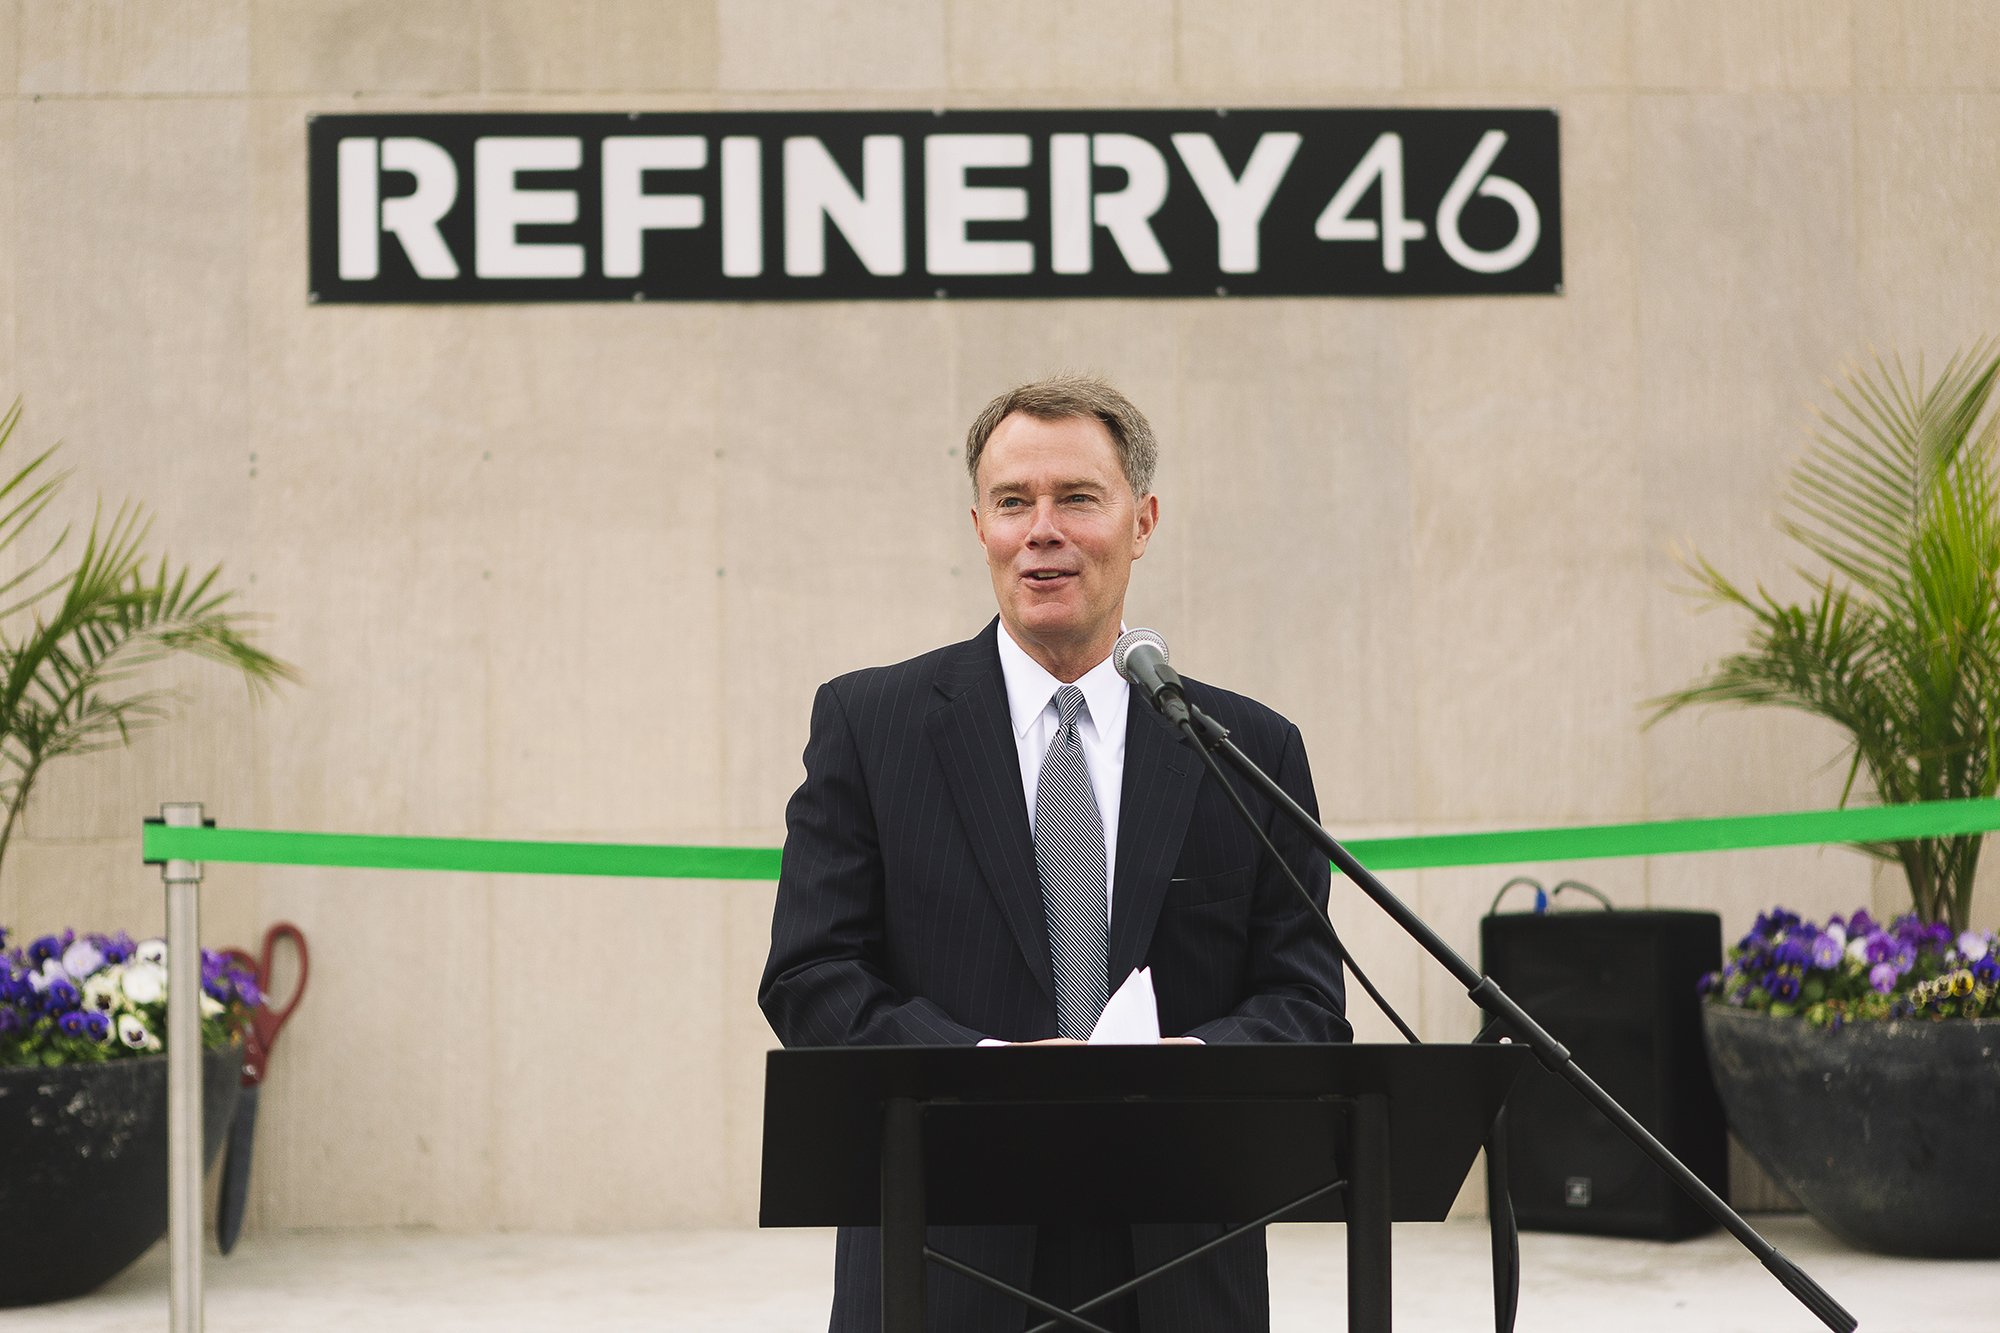 Corporate Event Photography - Refinery 46 Ribbon Cutting - Indianapolis Mayor Hogsett - 15